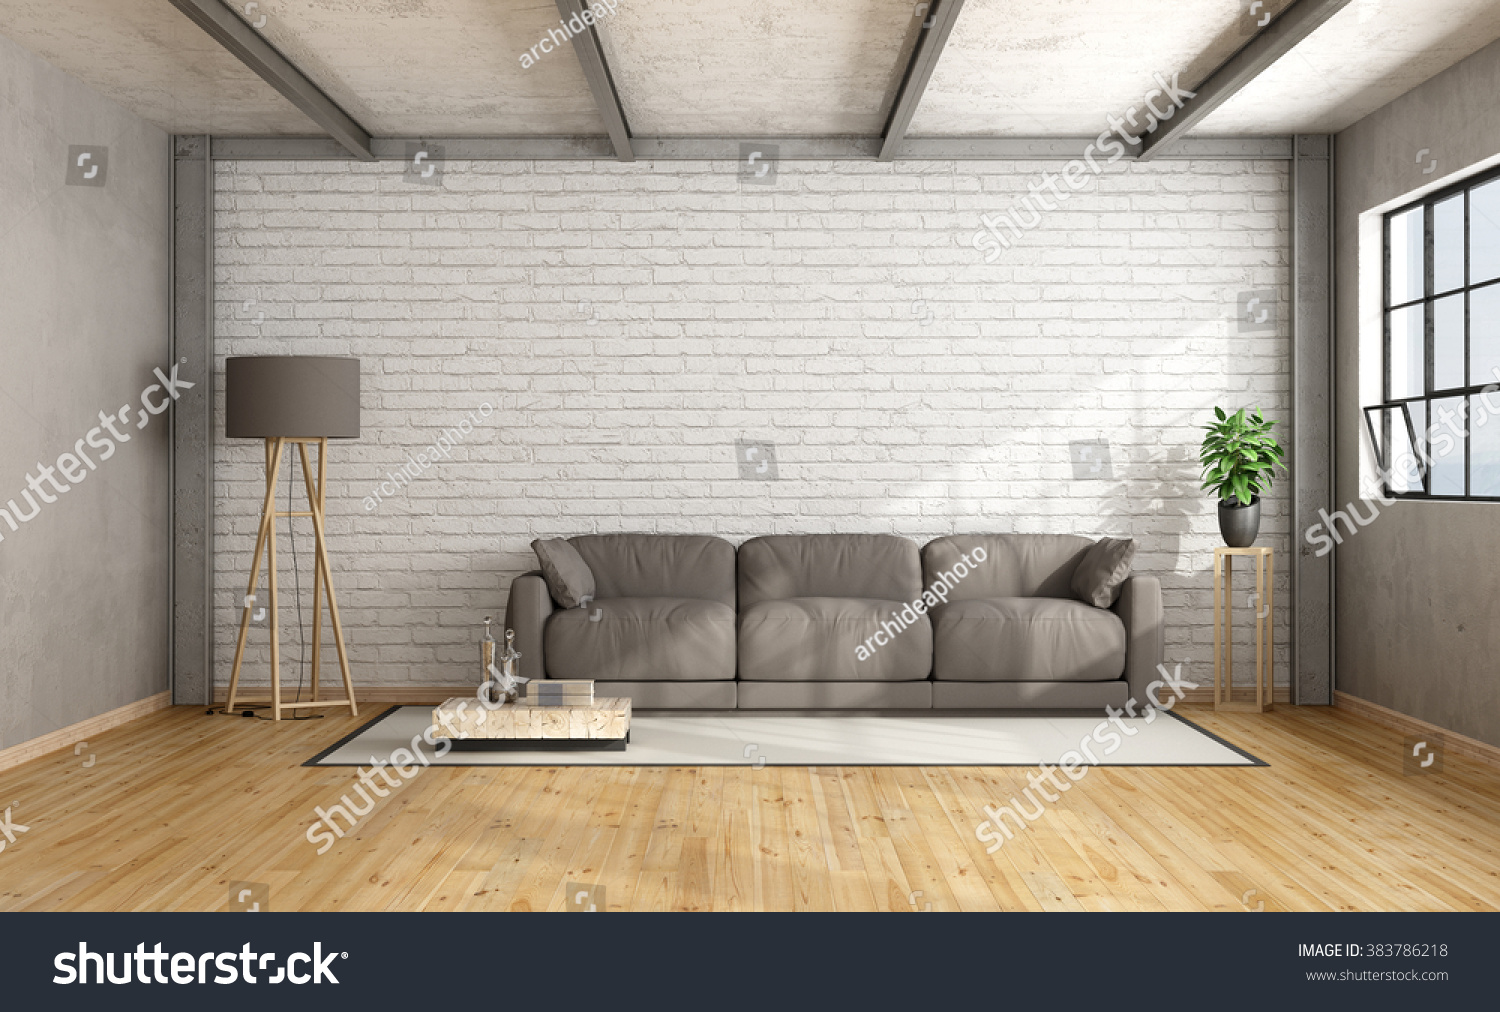 mock picture photo interior white compositionwhite stock royalty up brick poster flowers wall free composition